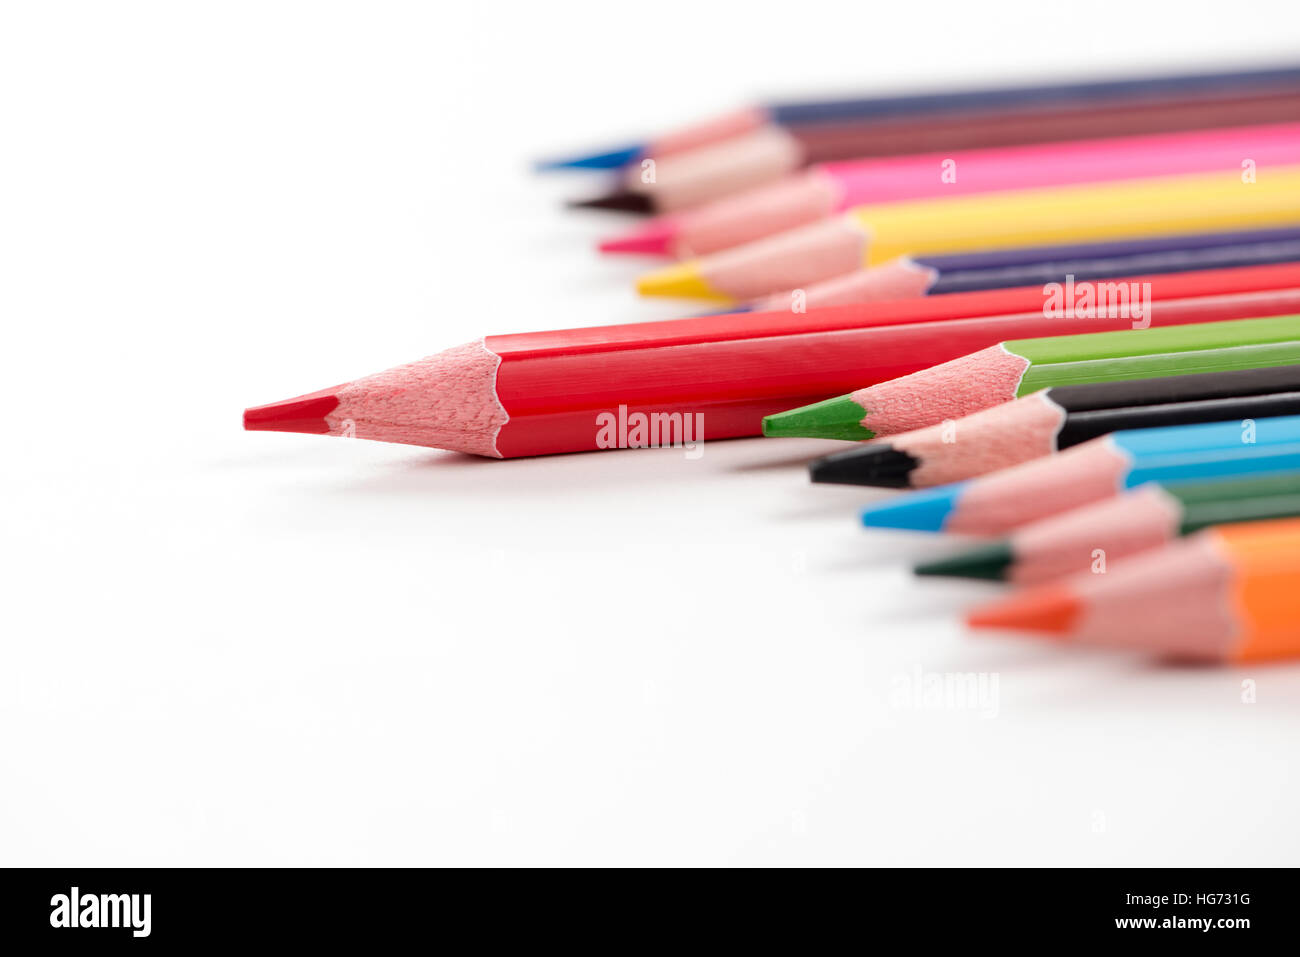 Colored pencils arranged on the table in natural light - Stock Image